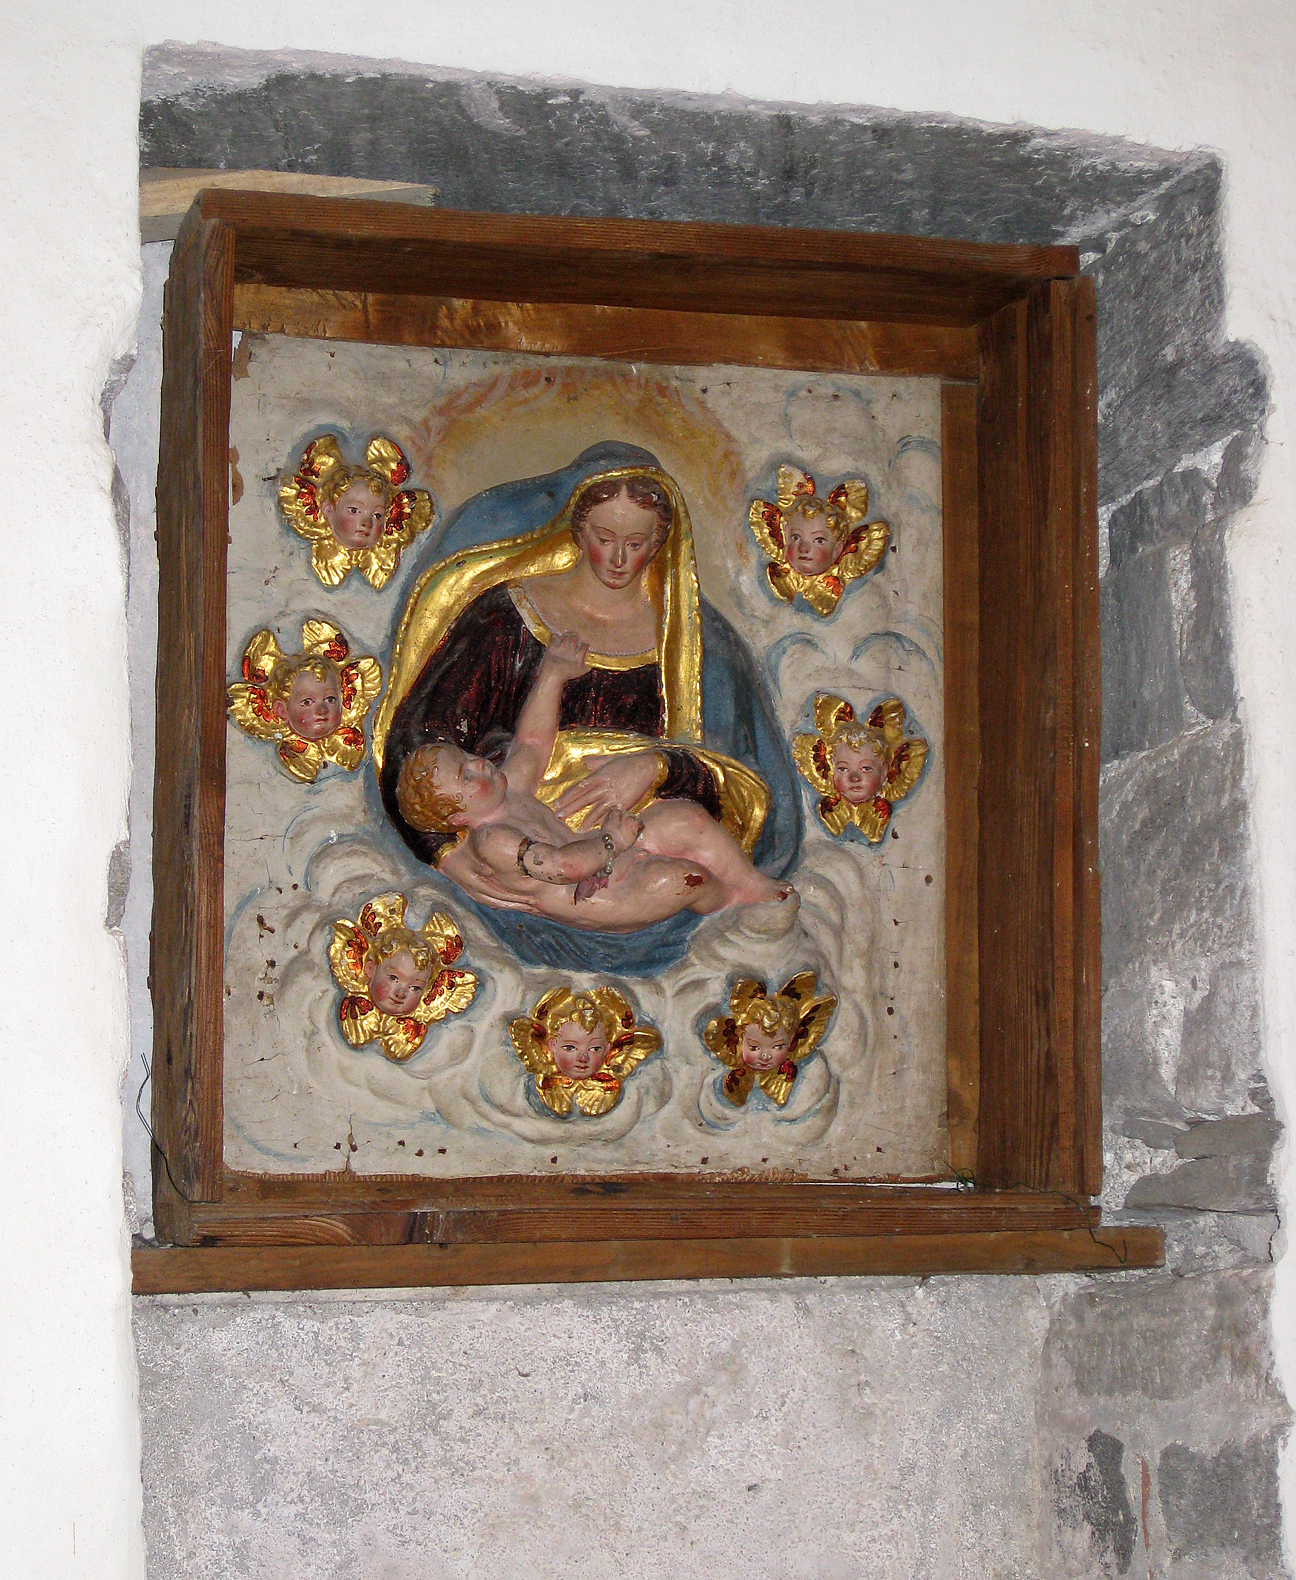 (above) I don't remember where the above piece was located within the church, but it is beautiful.